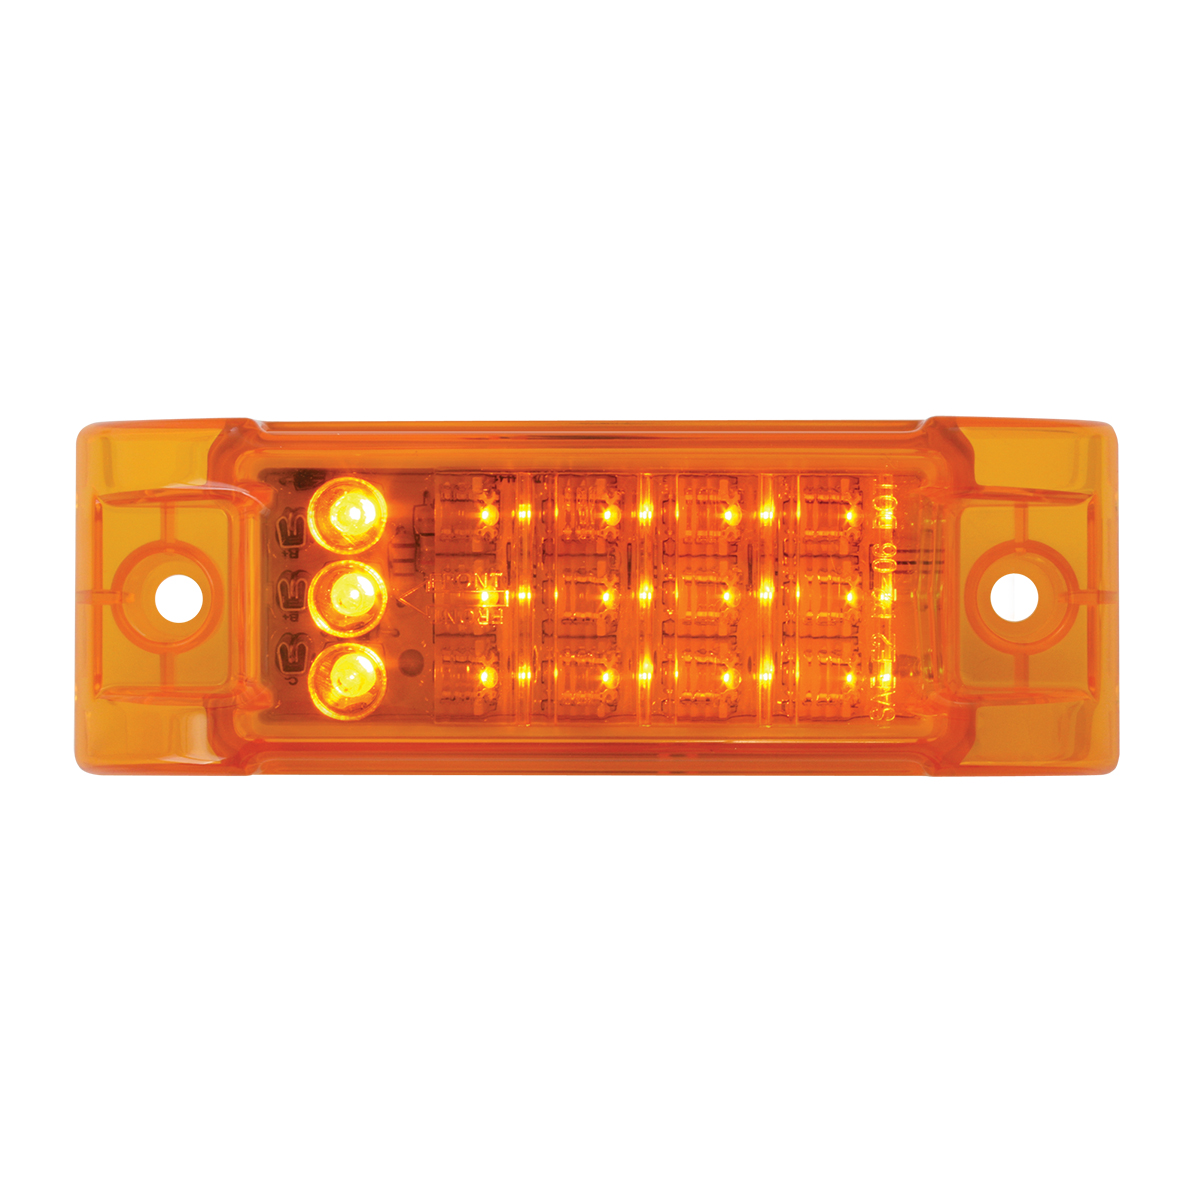 77664 Rectangular LED Turn & Marker Light in Amber/Amber